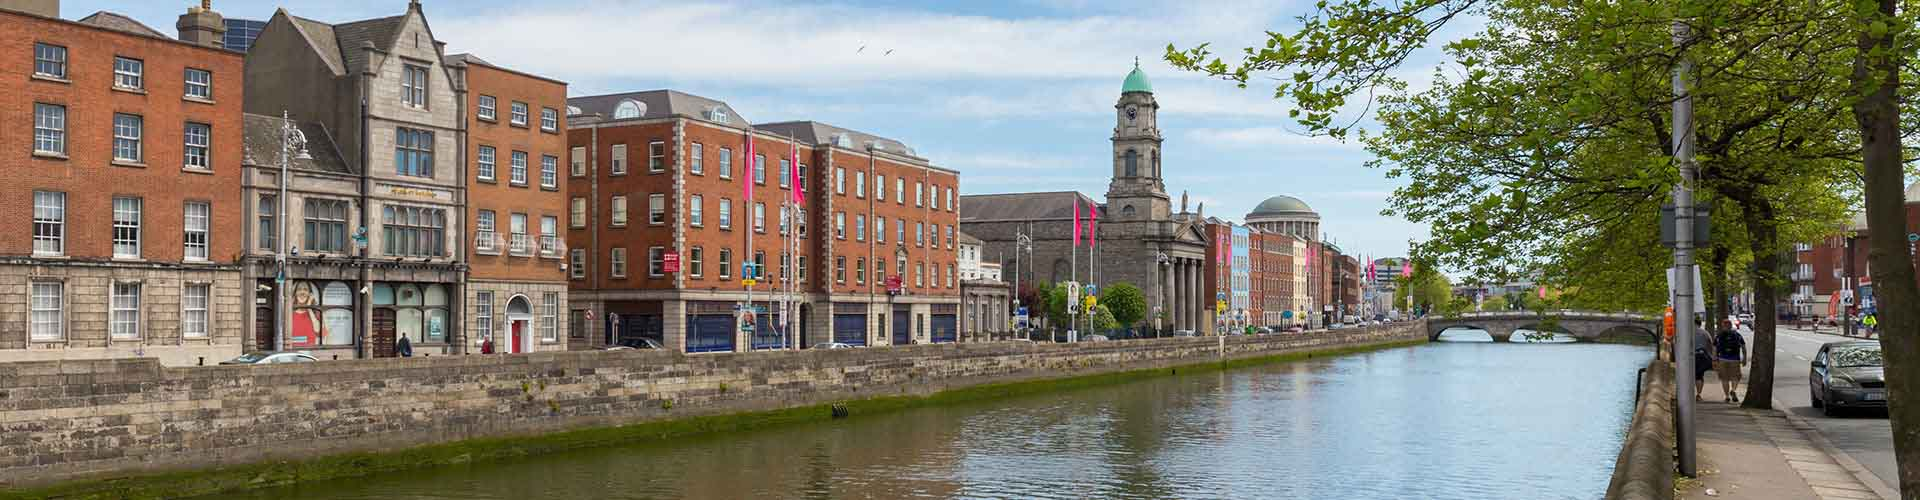 Dublin – Hostels close to City Center. Maps for Dublin, Photos and Reviews for each hostel in Dublin.